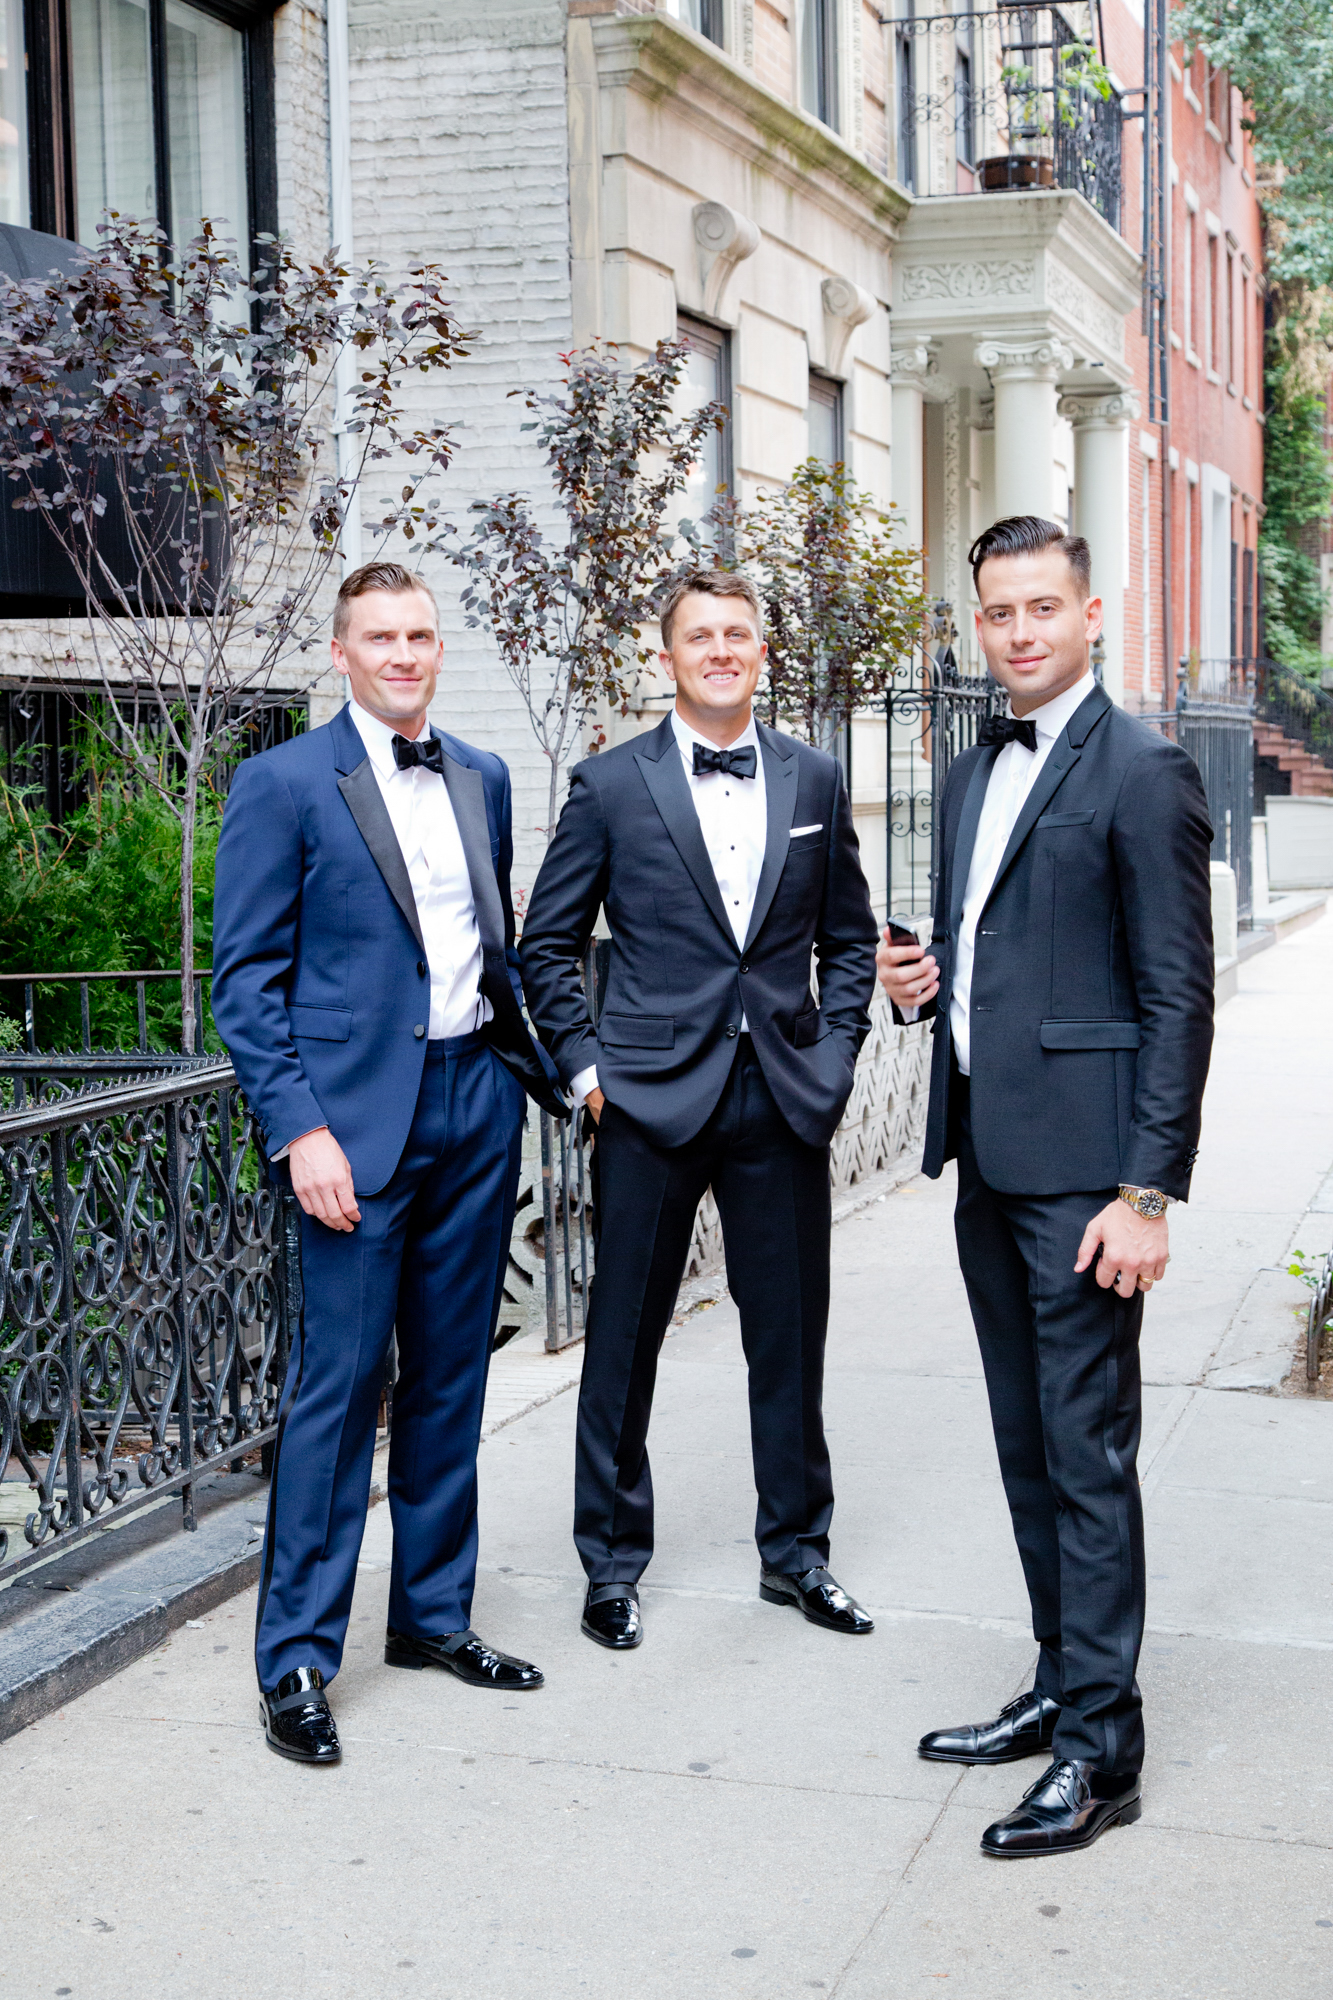 101_CarlyGaebe_SteadfastStudio_WeddingPhotography_Readyluck_NewYorkCity_Manhattan_WestVillage_Groomsmen_Suits.jpg